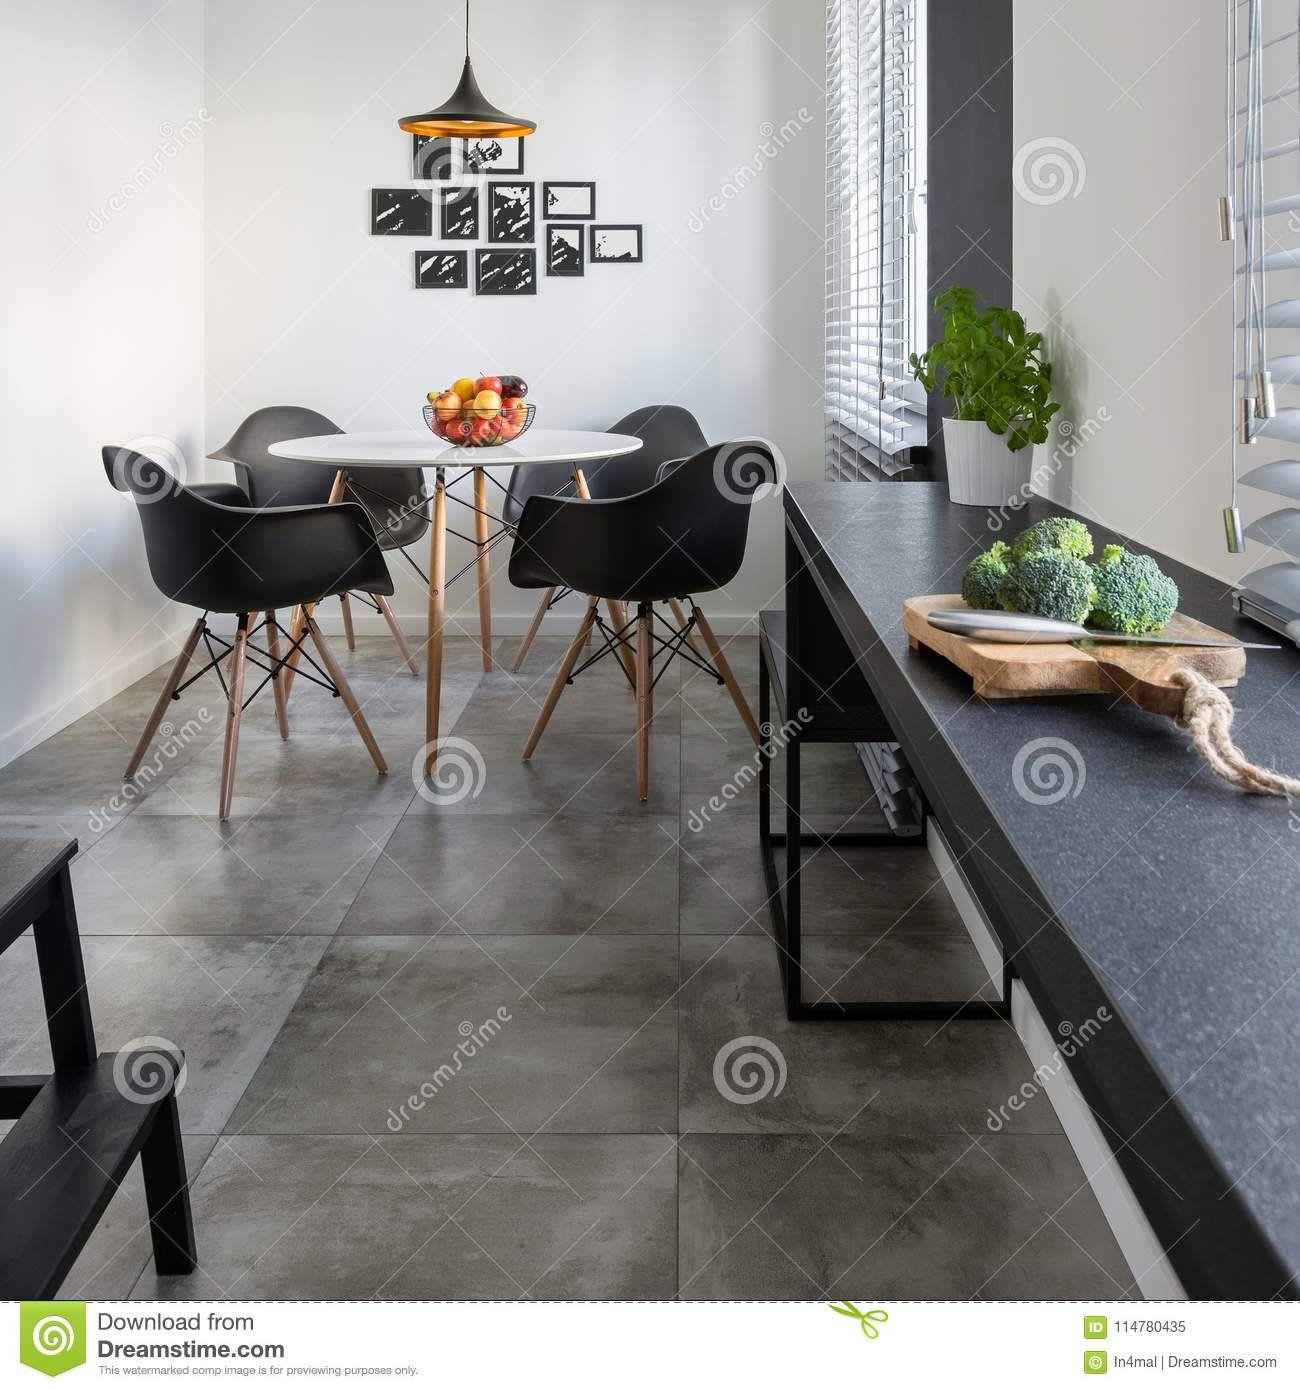 Kitchen Interior With Pink Furniture And Tiles Stock: Kitchen With Long, Granite Countertop Stock Image